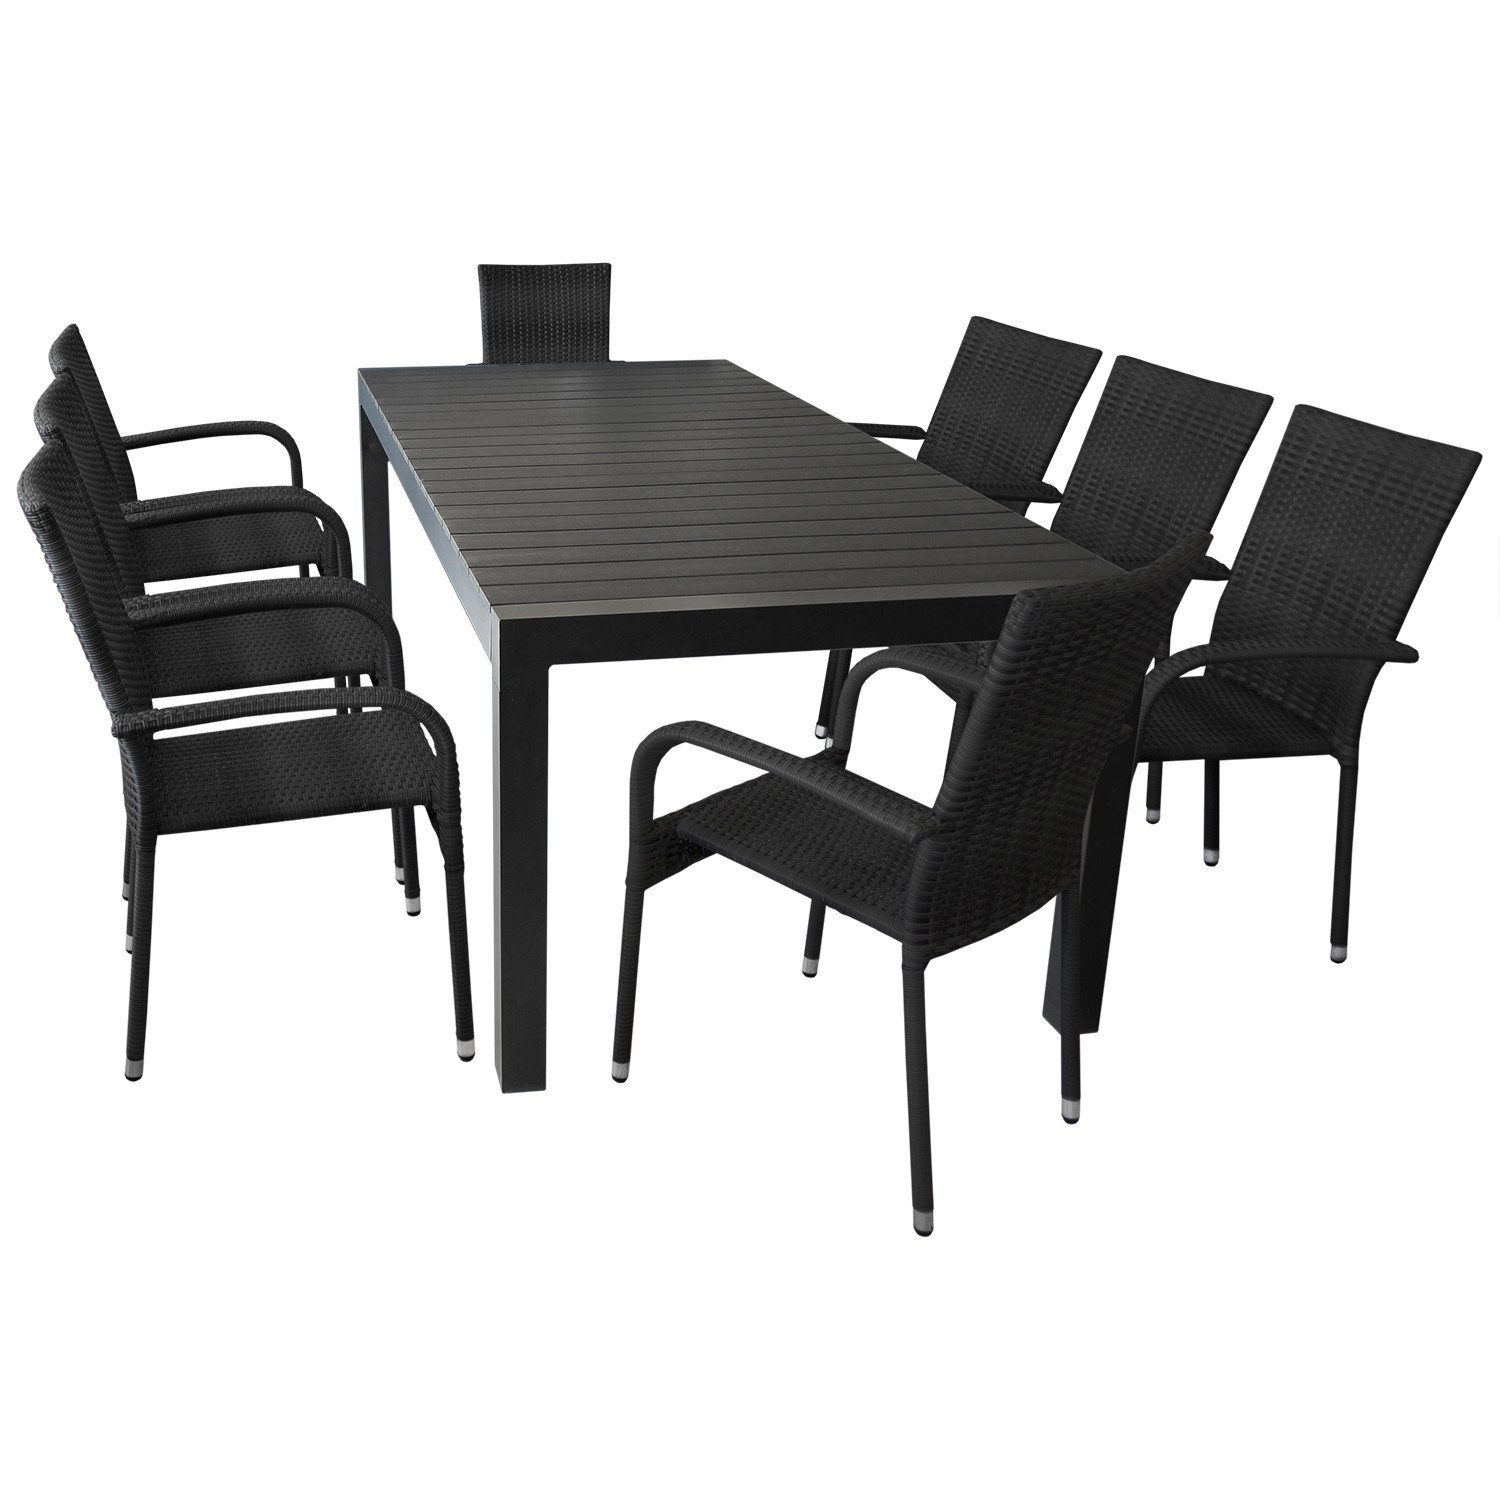 elegante sitzgruppe gartengarnitur gartenm bel terrassenm bel set 9 teilig ausziehtisch 224. Black Bedroom Furniture Sets. Home Design Ideas